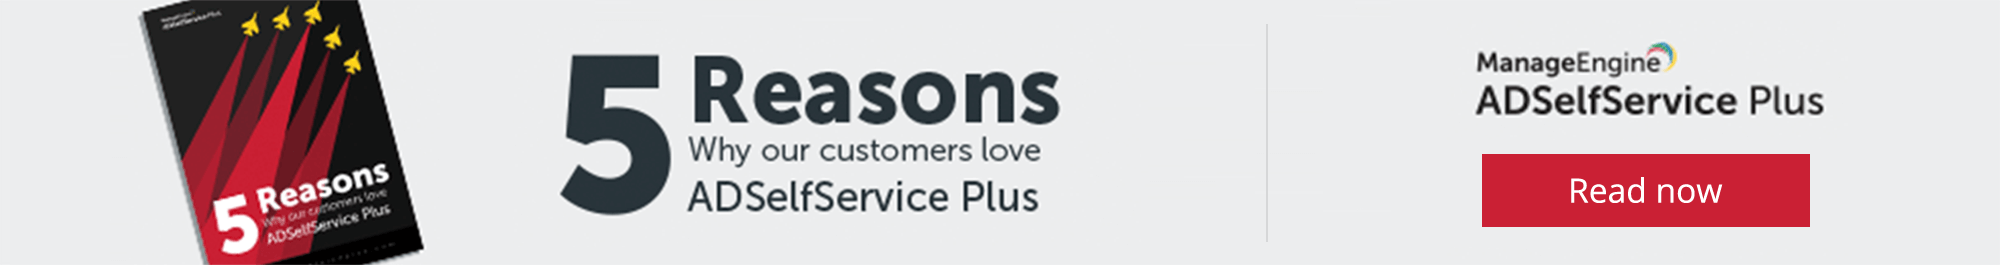 Why our customers love ADSelfService Plus